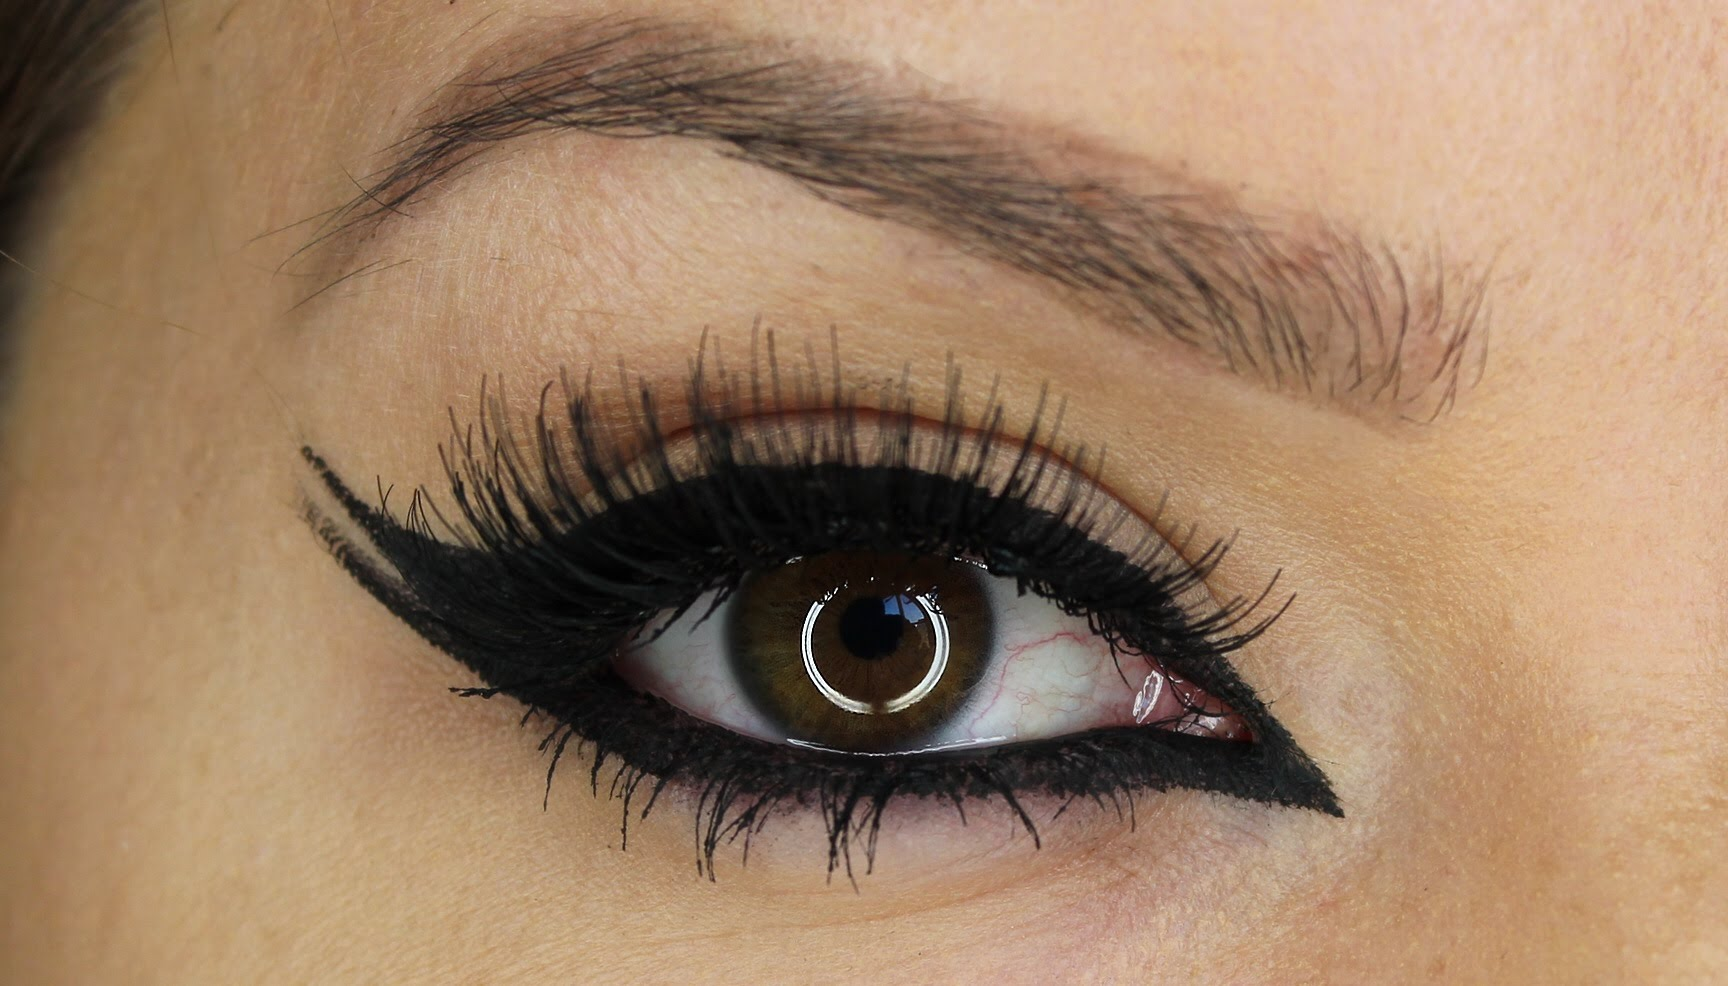 office eye liner - 10 Eyeliner Styles for Beginners - Step By Step Tutorial with Images